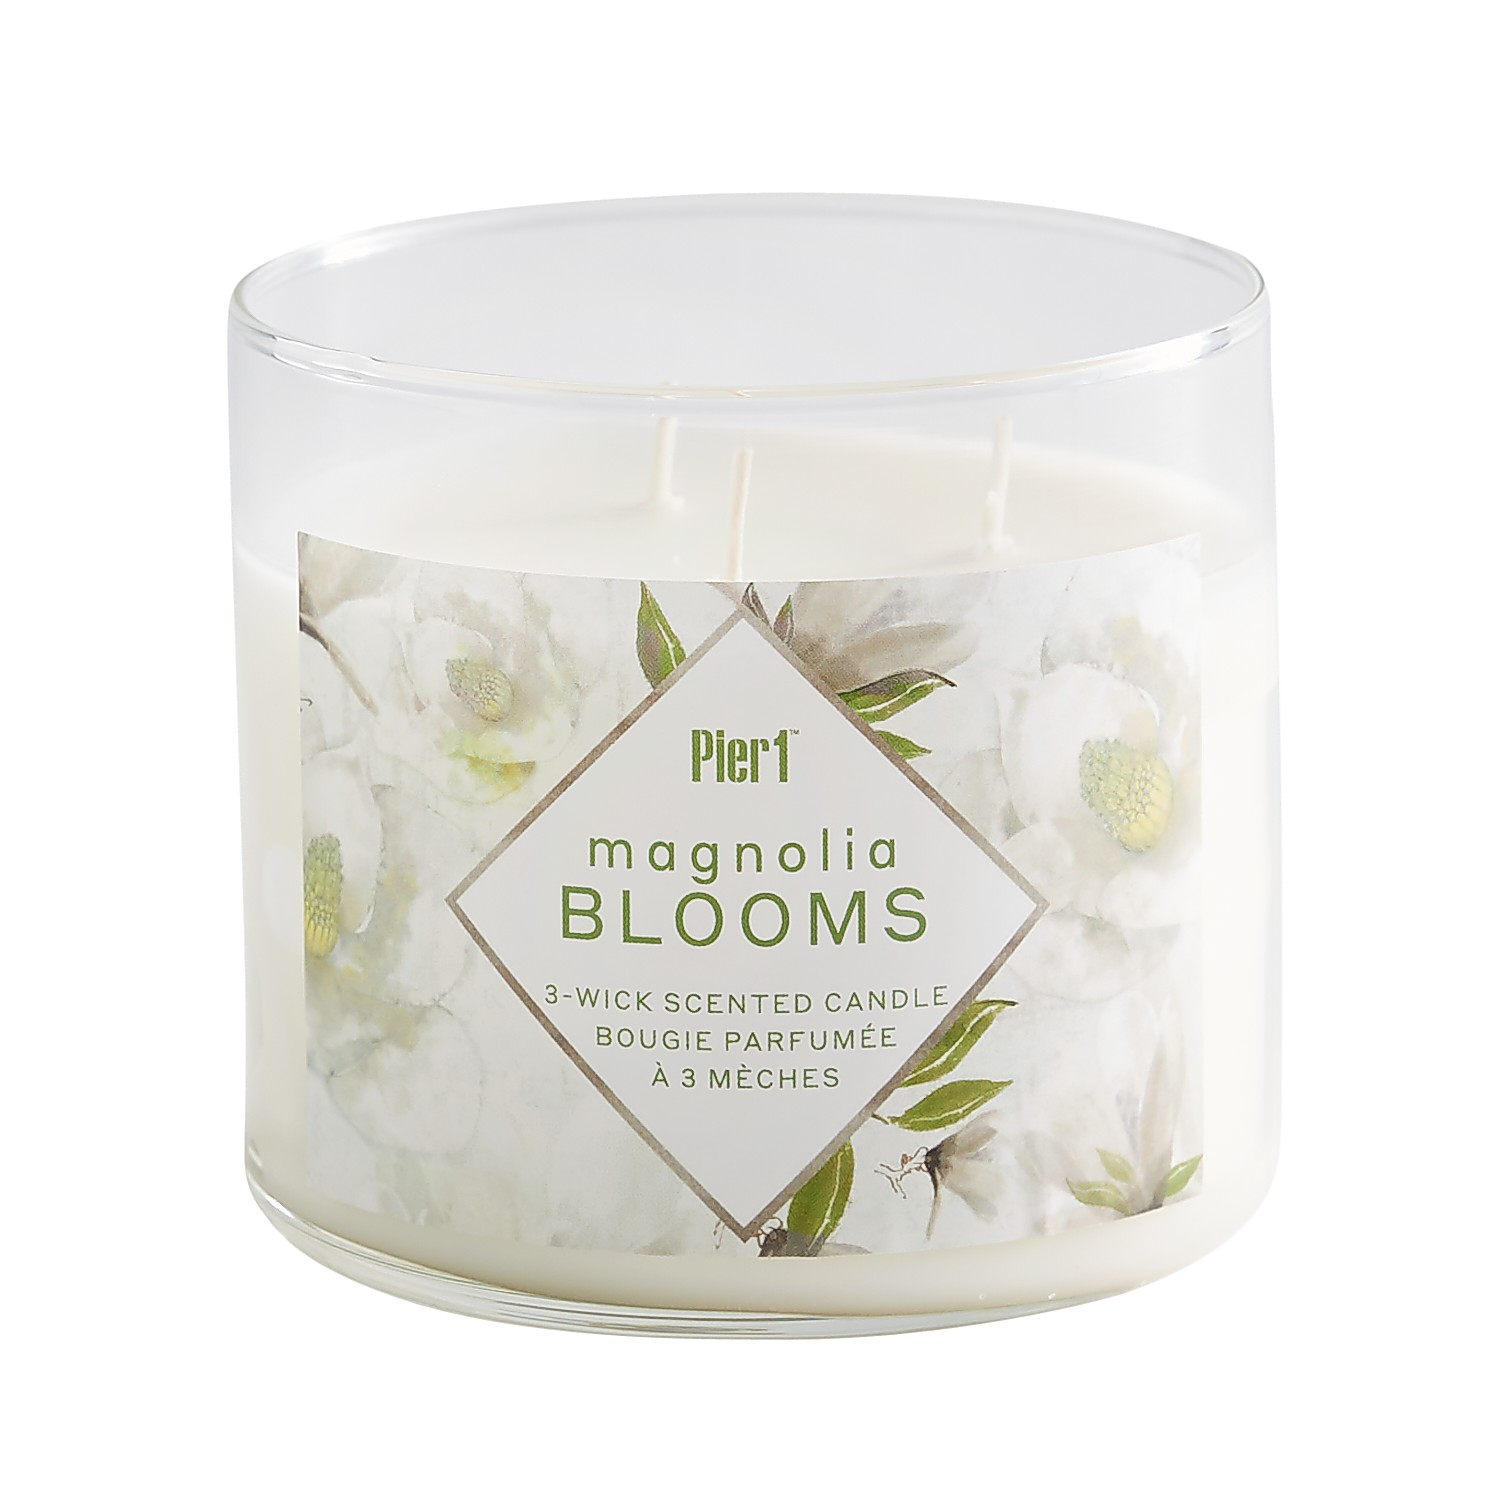 Magnolia Blooms Clear Filled 3-Wick Candle